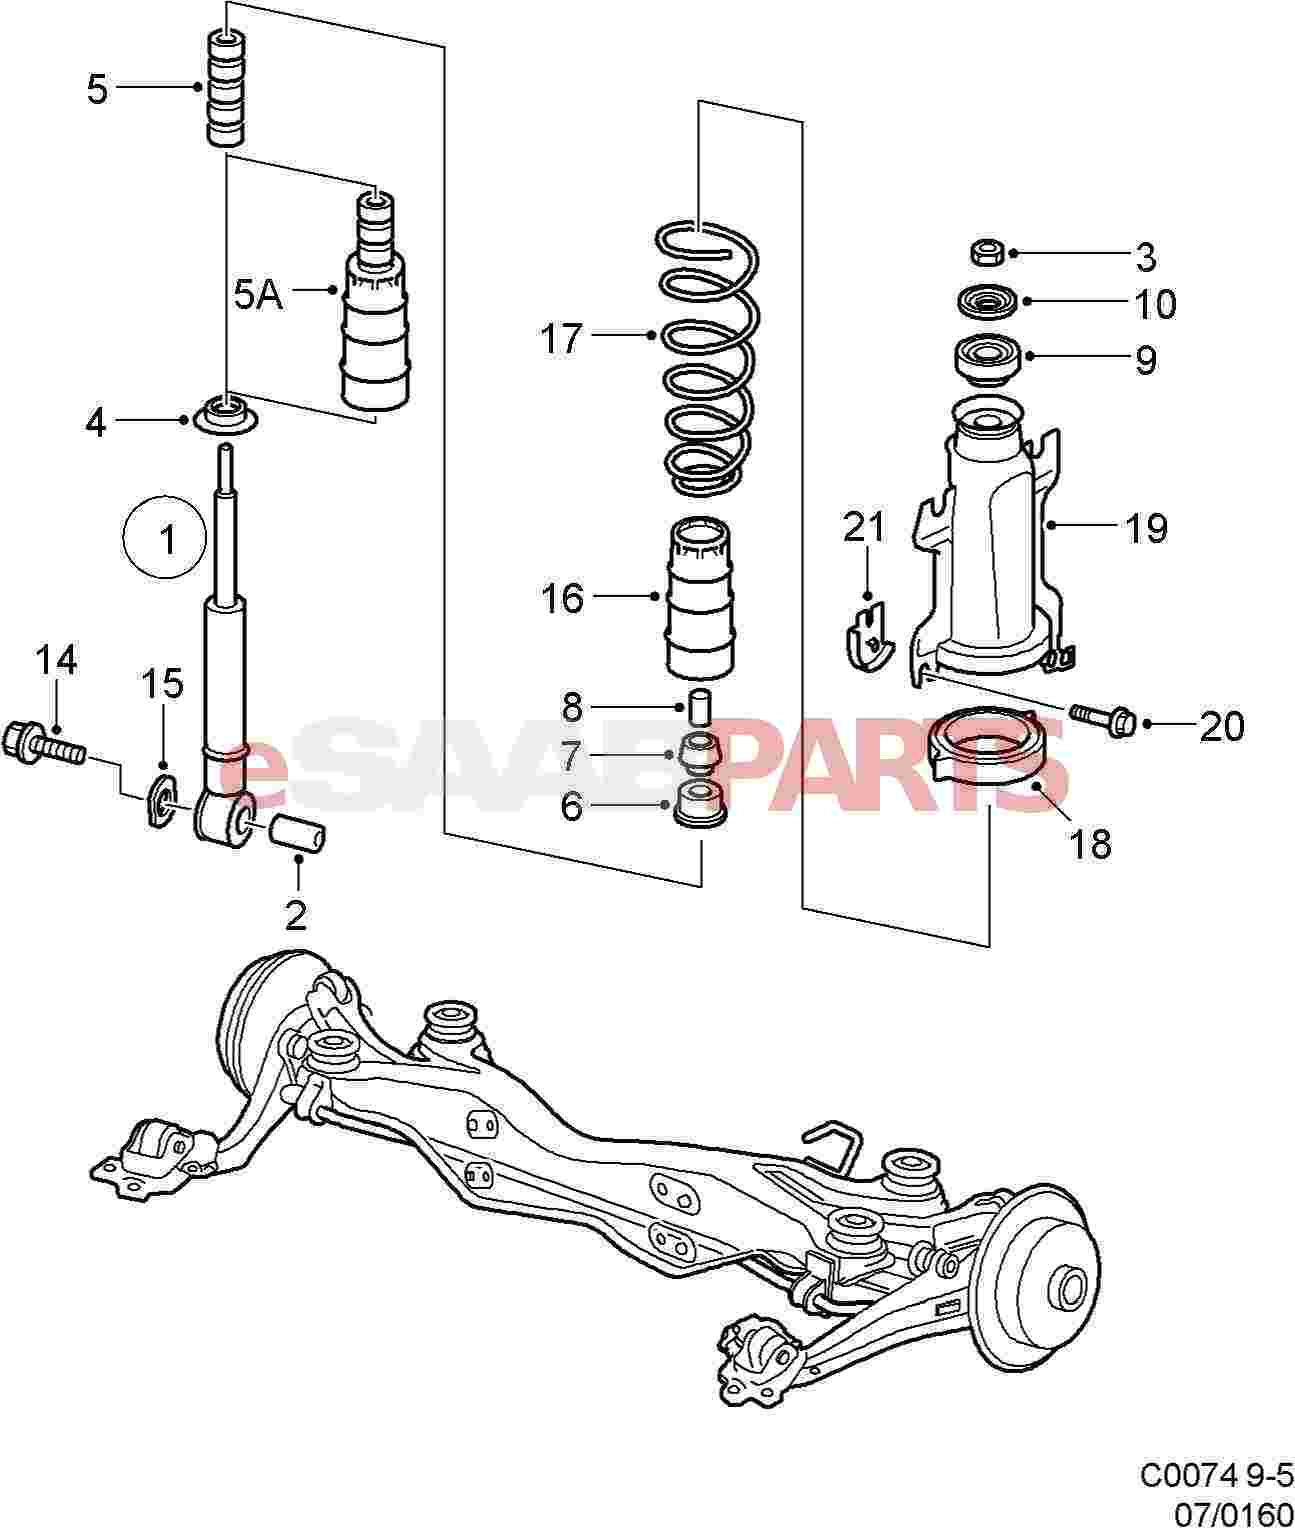 Auto Engine Parts Diagram 5238530 Saab Shock Absorber Kit Genuine From Image 1